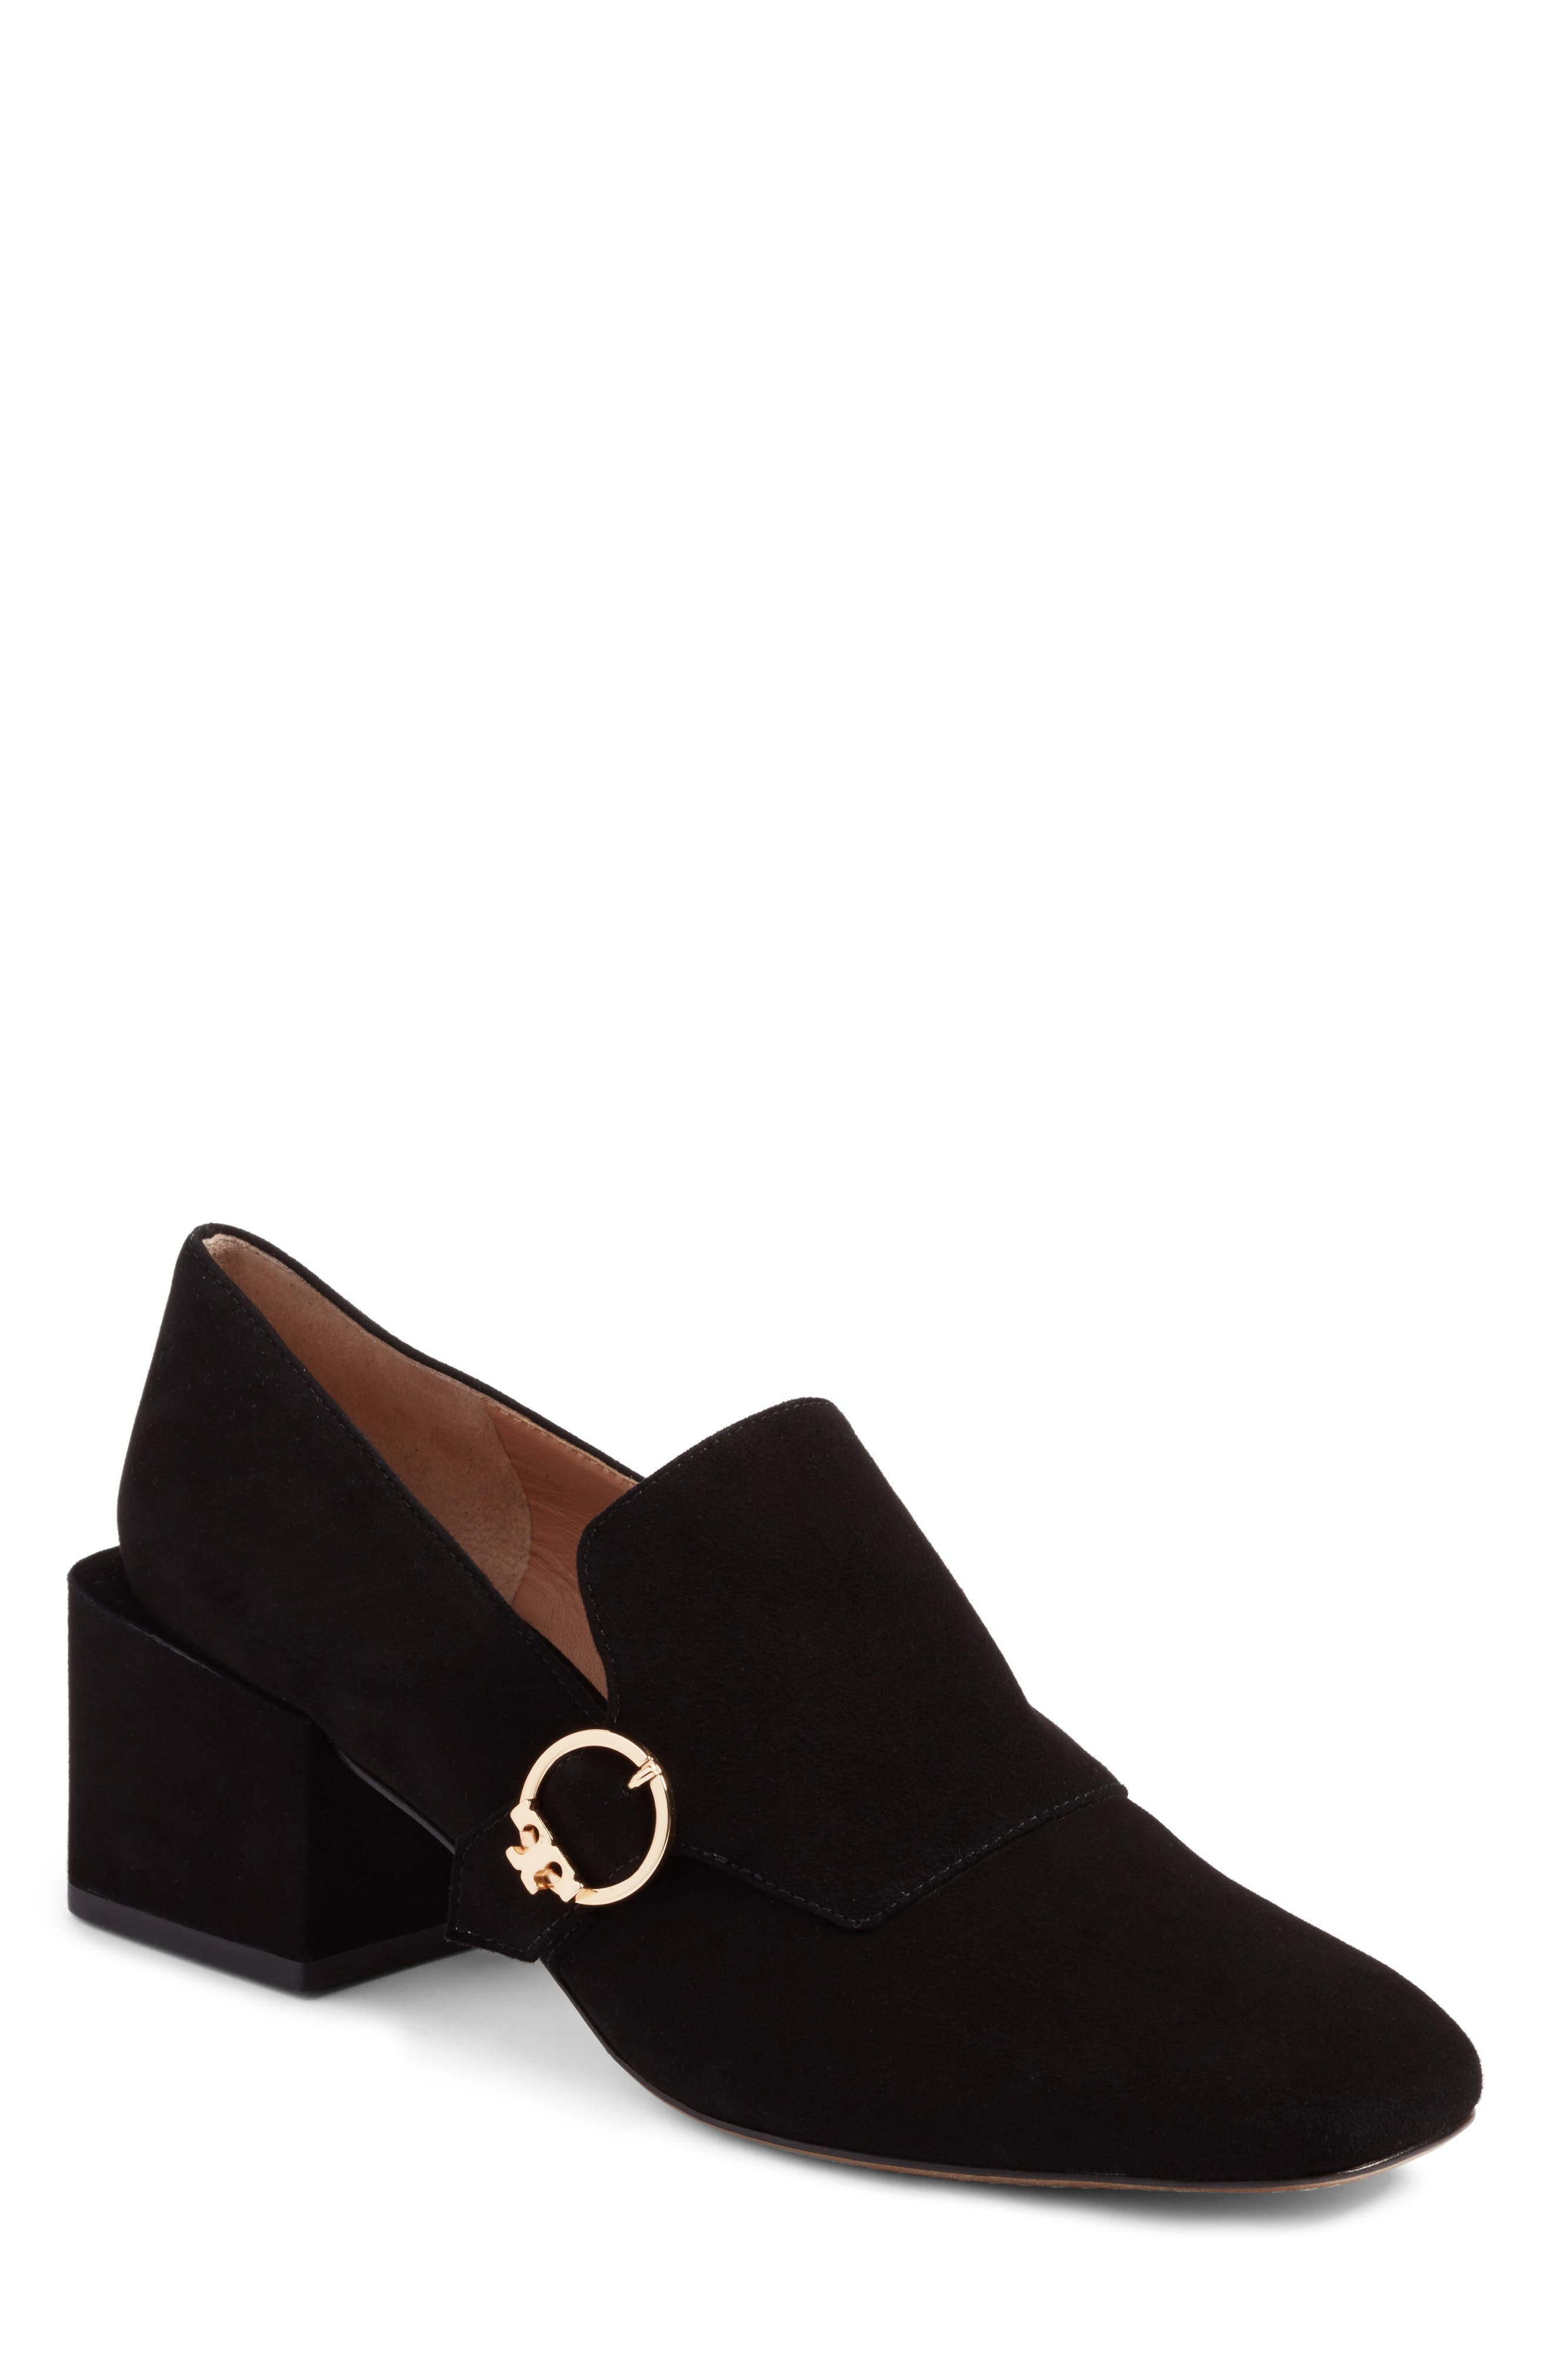 Alternate Image 1 Selected - Tory Burch Tess Loafer Pump (Women)